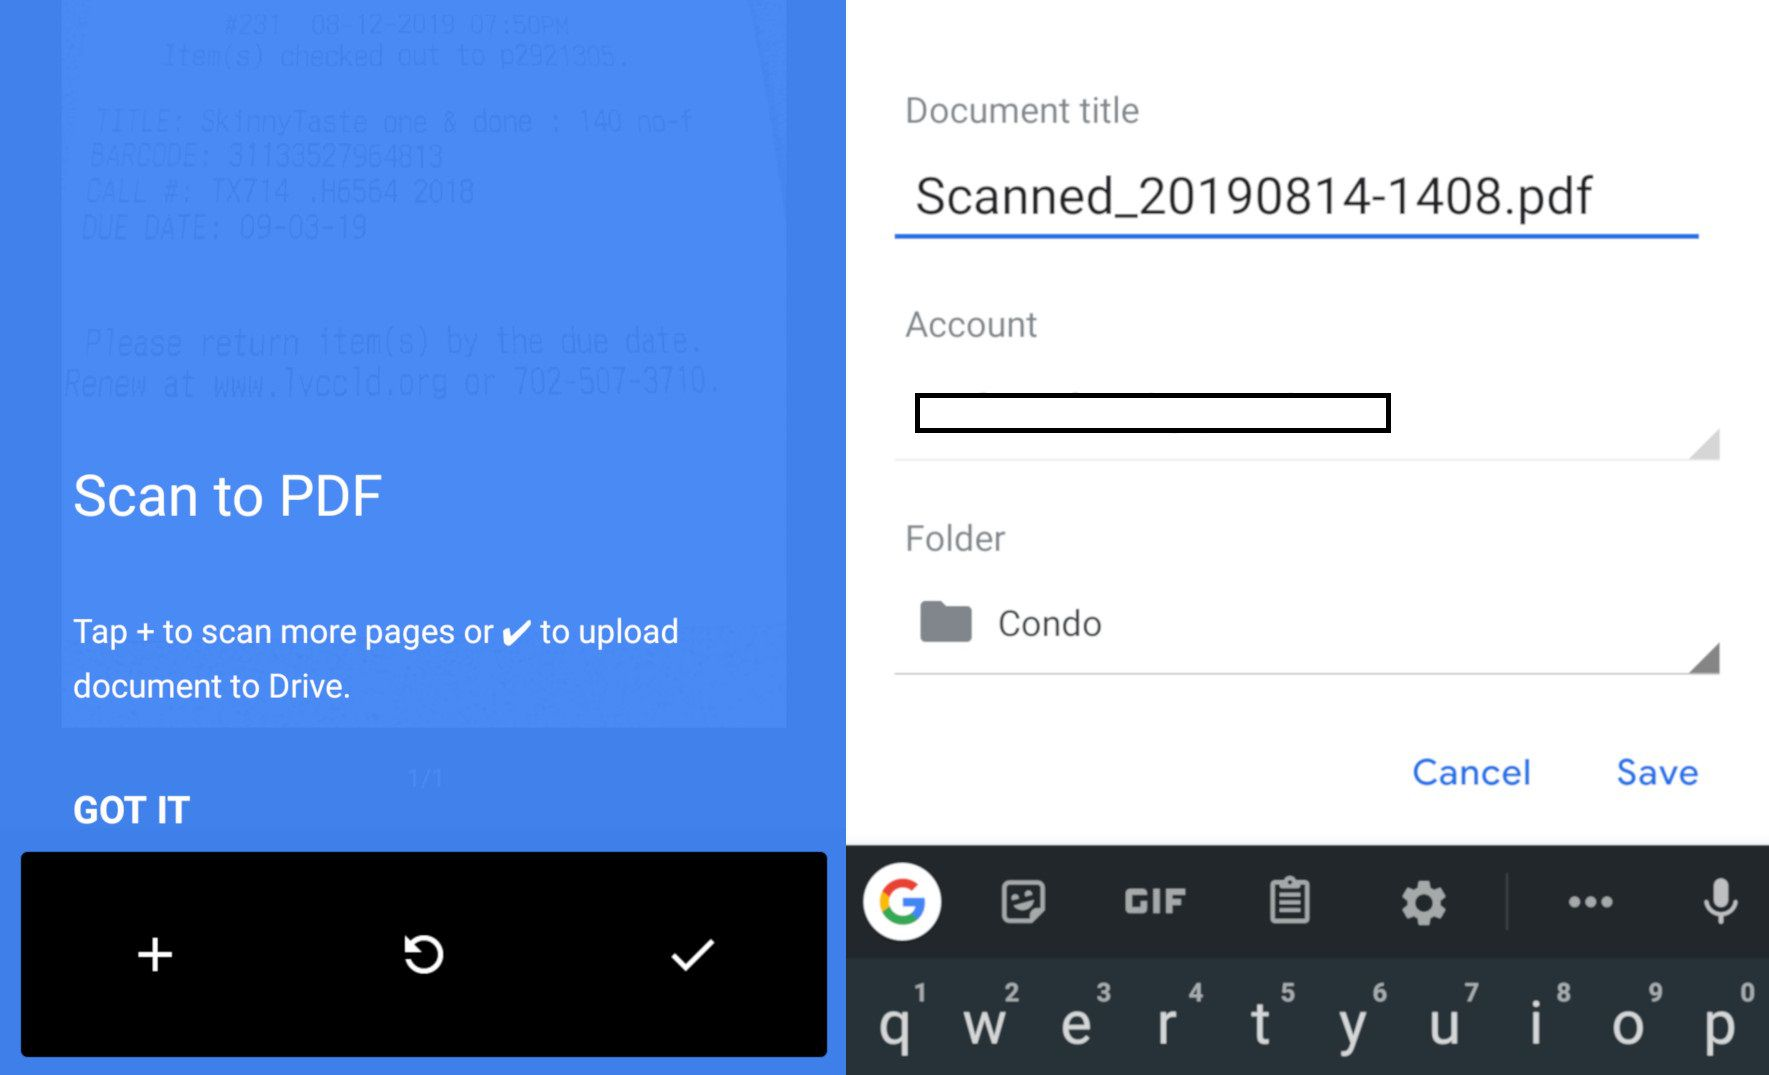 How to Scan Documents to Your Phone or Tablet